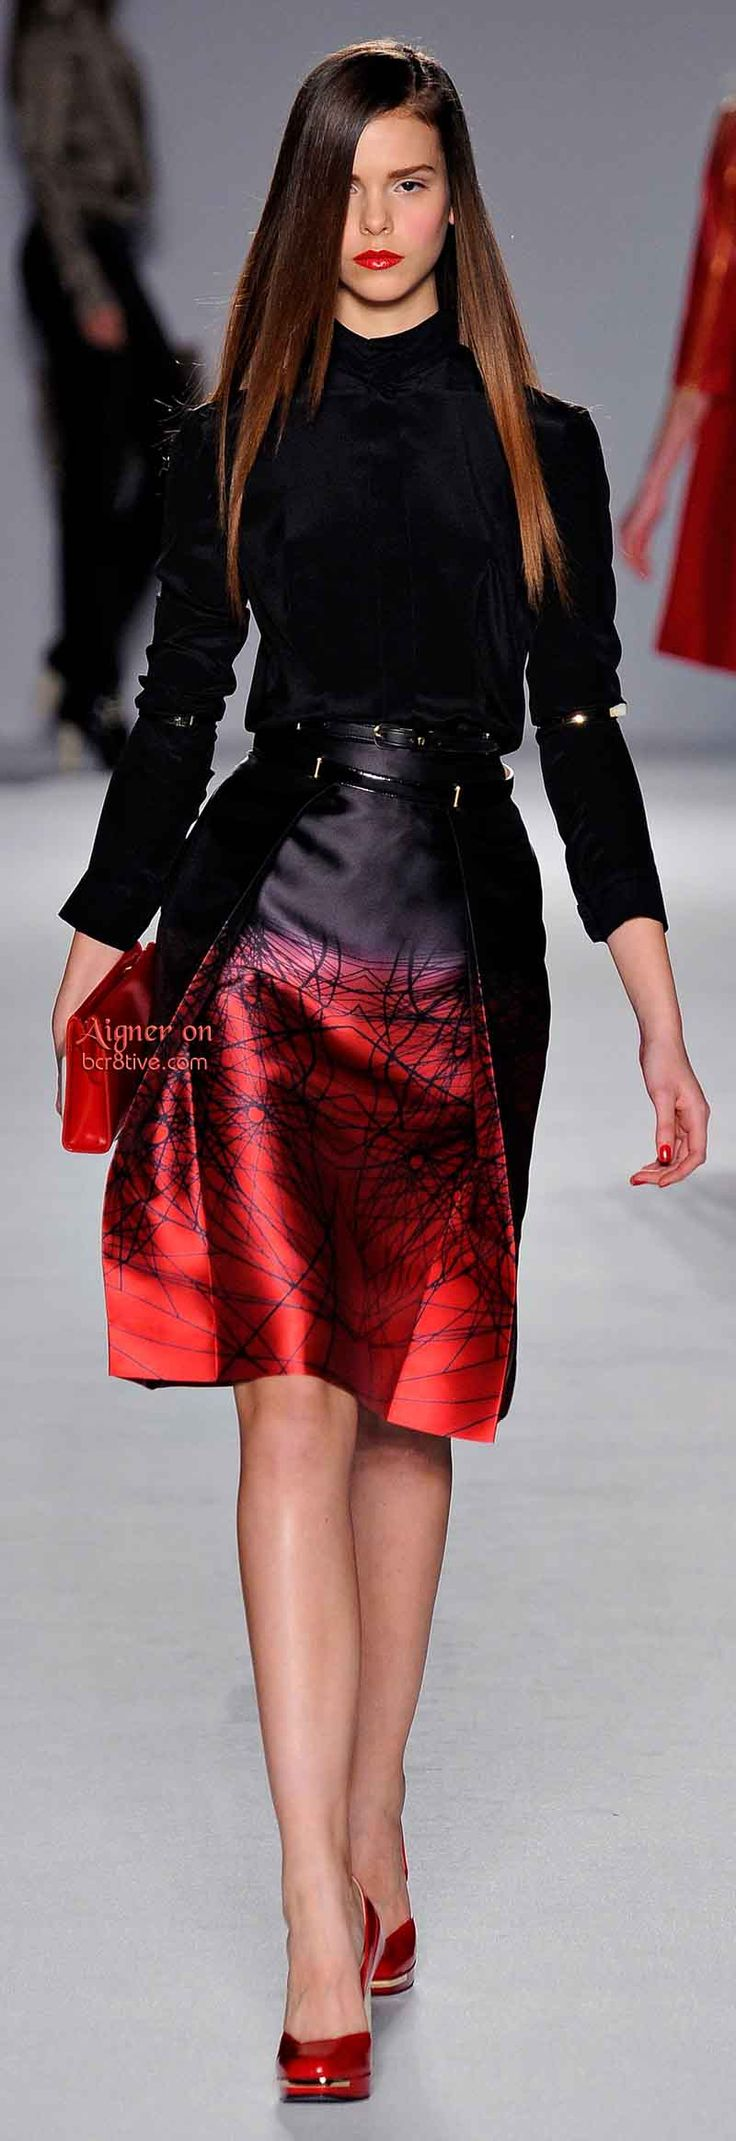 Aigner Fall Winter 2014-15 RTW Two of my favorite colors and it's fresh and fierce. How I hope to dress one day :) Whenever I can afford it.